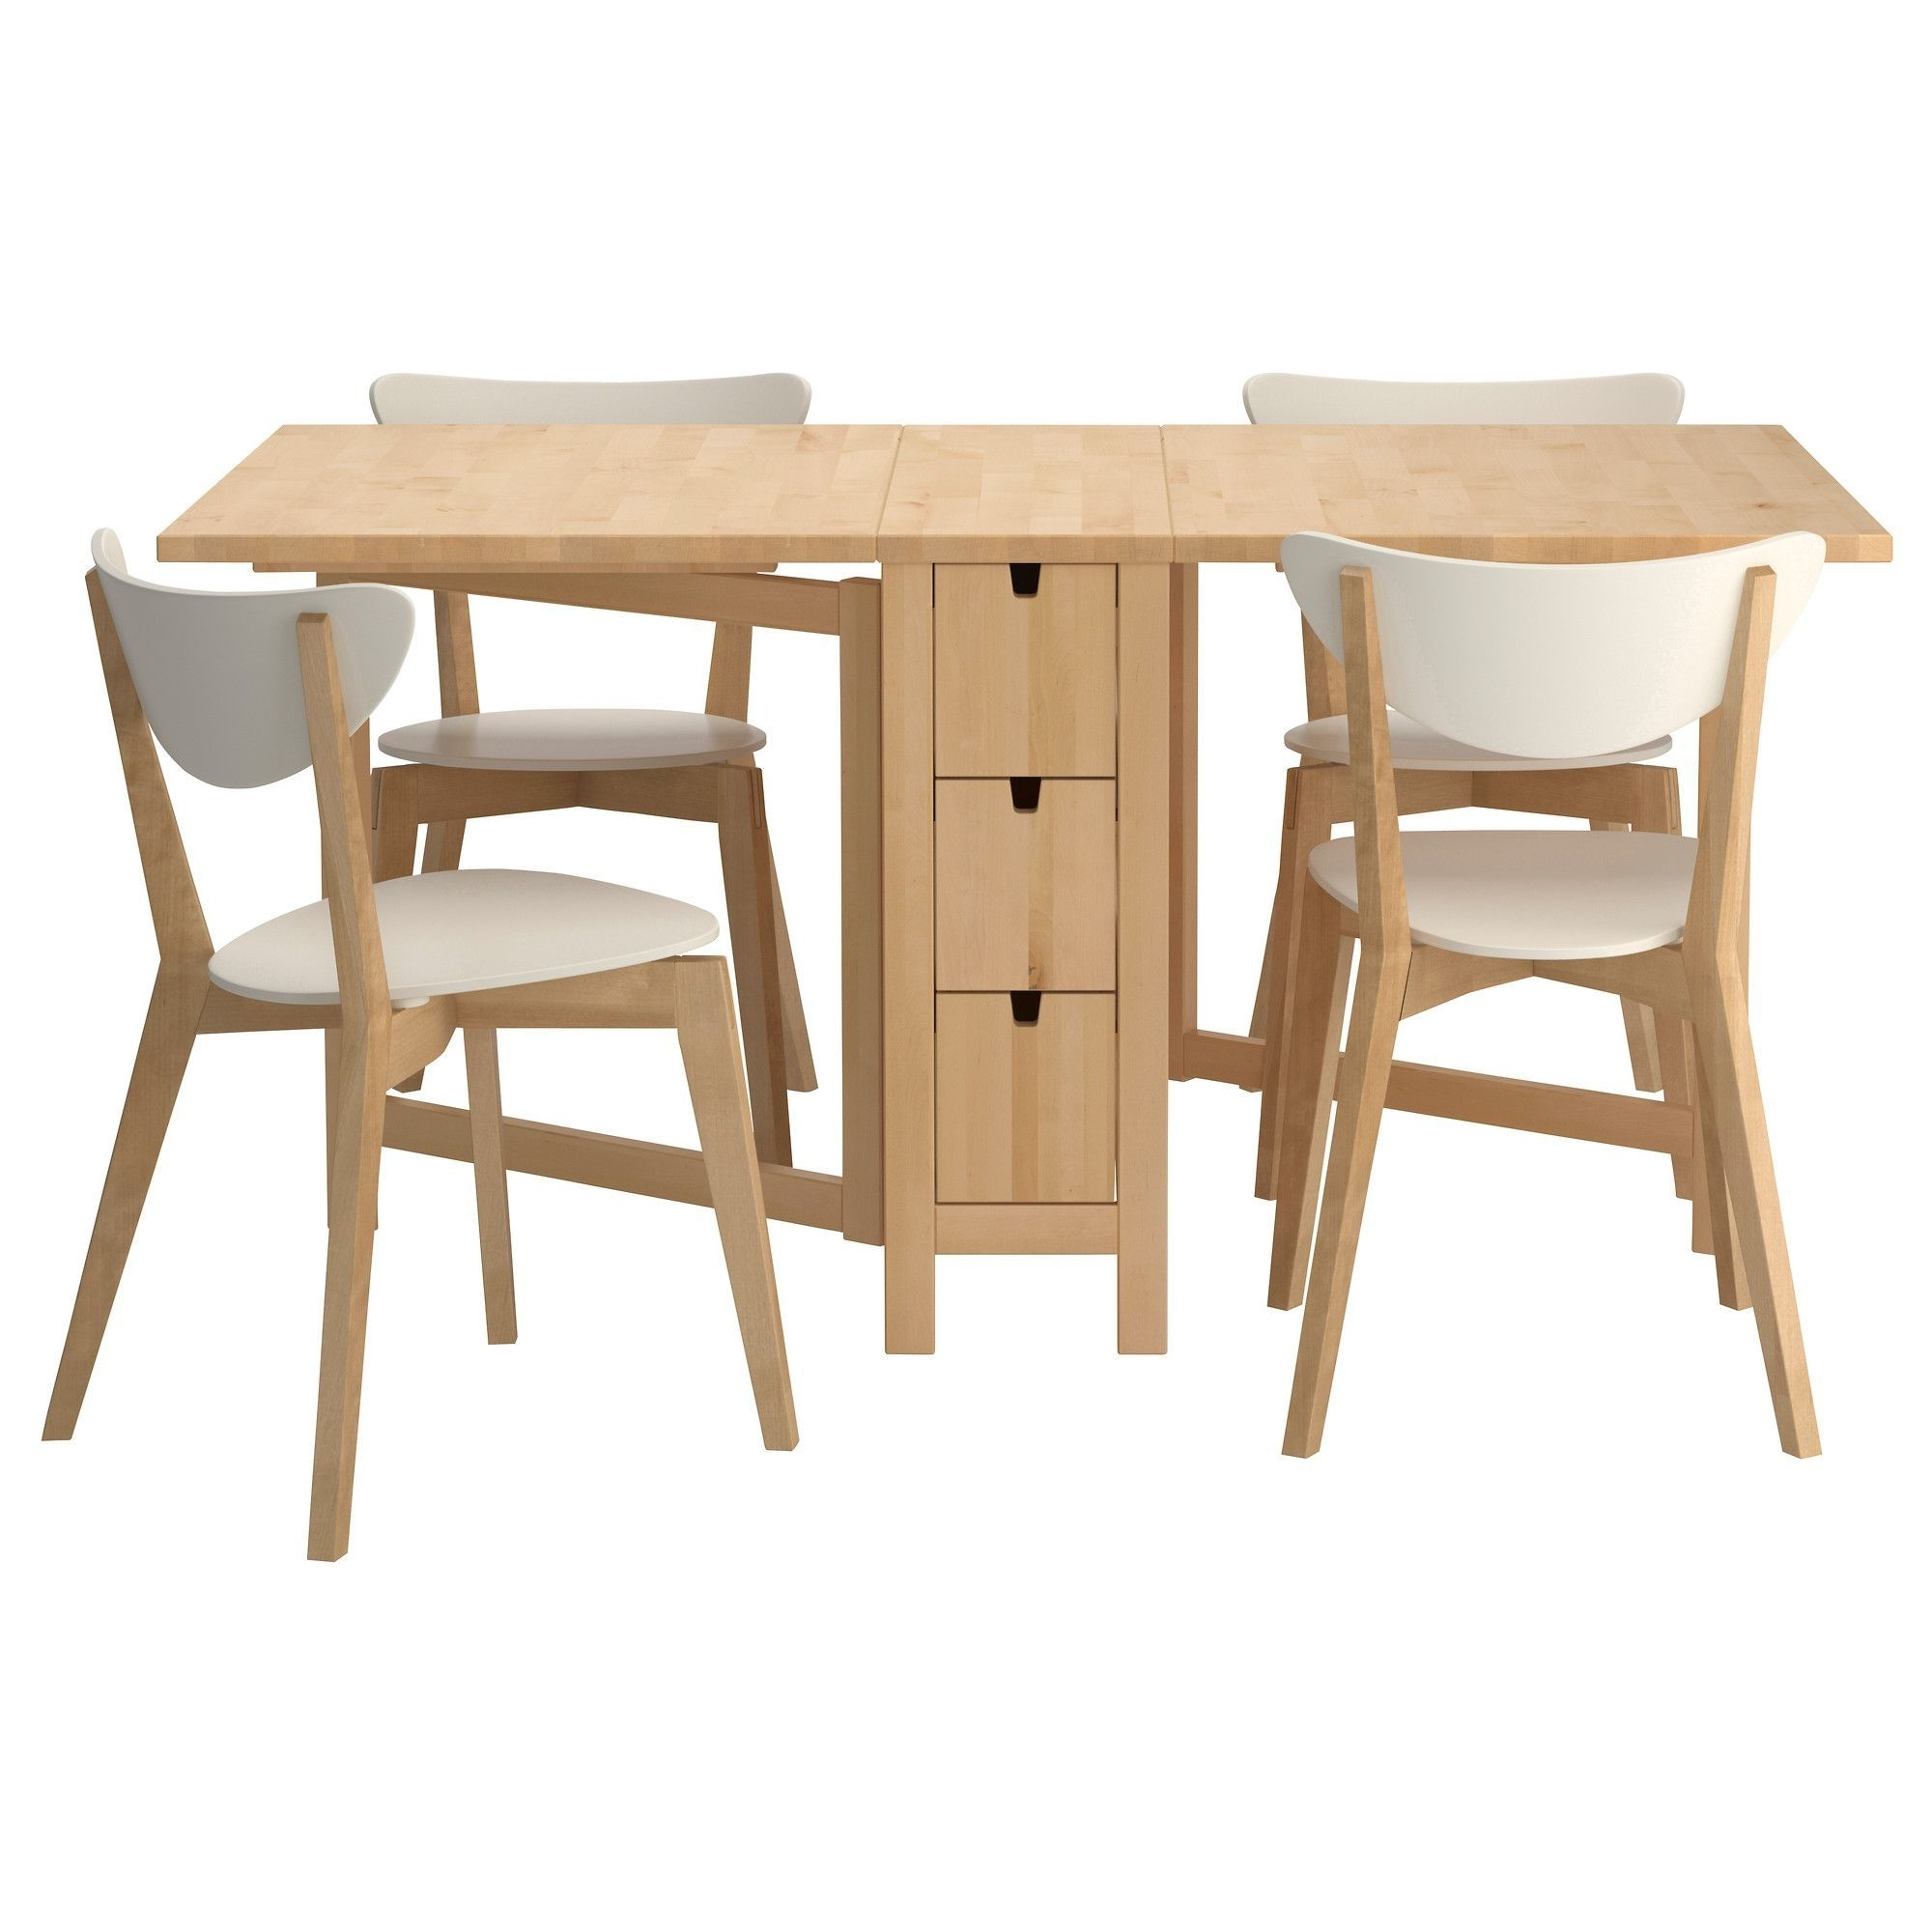 Popular Gorgeous Small Dining Table That Can Be Folded Complete With The Within Folding Dining Table And Chairs Sets (View 5 of 25)